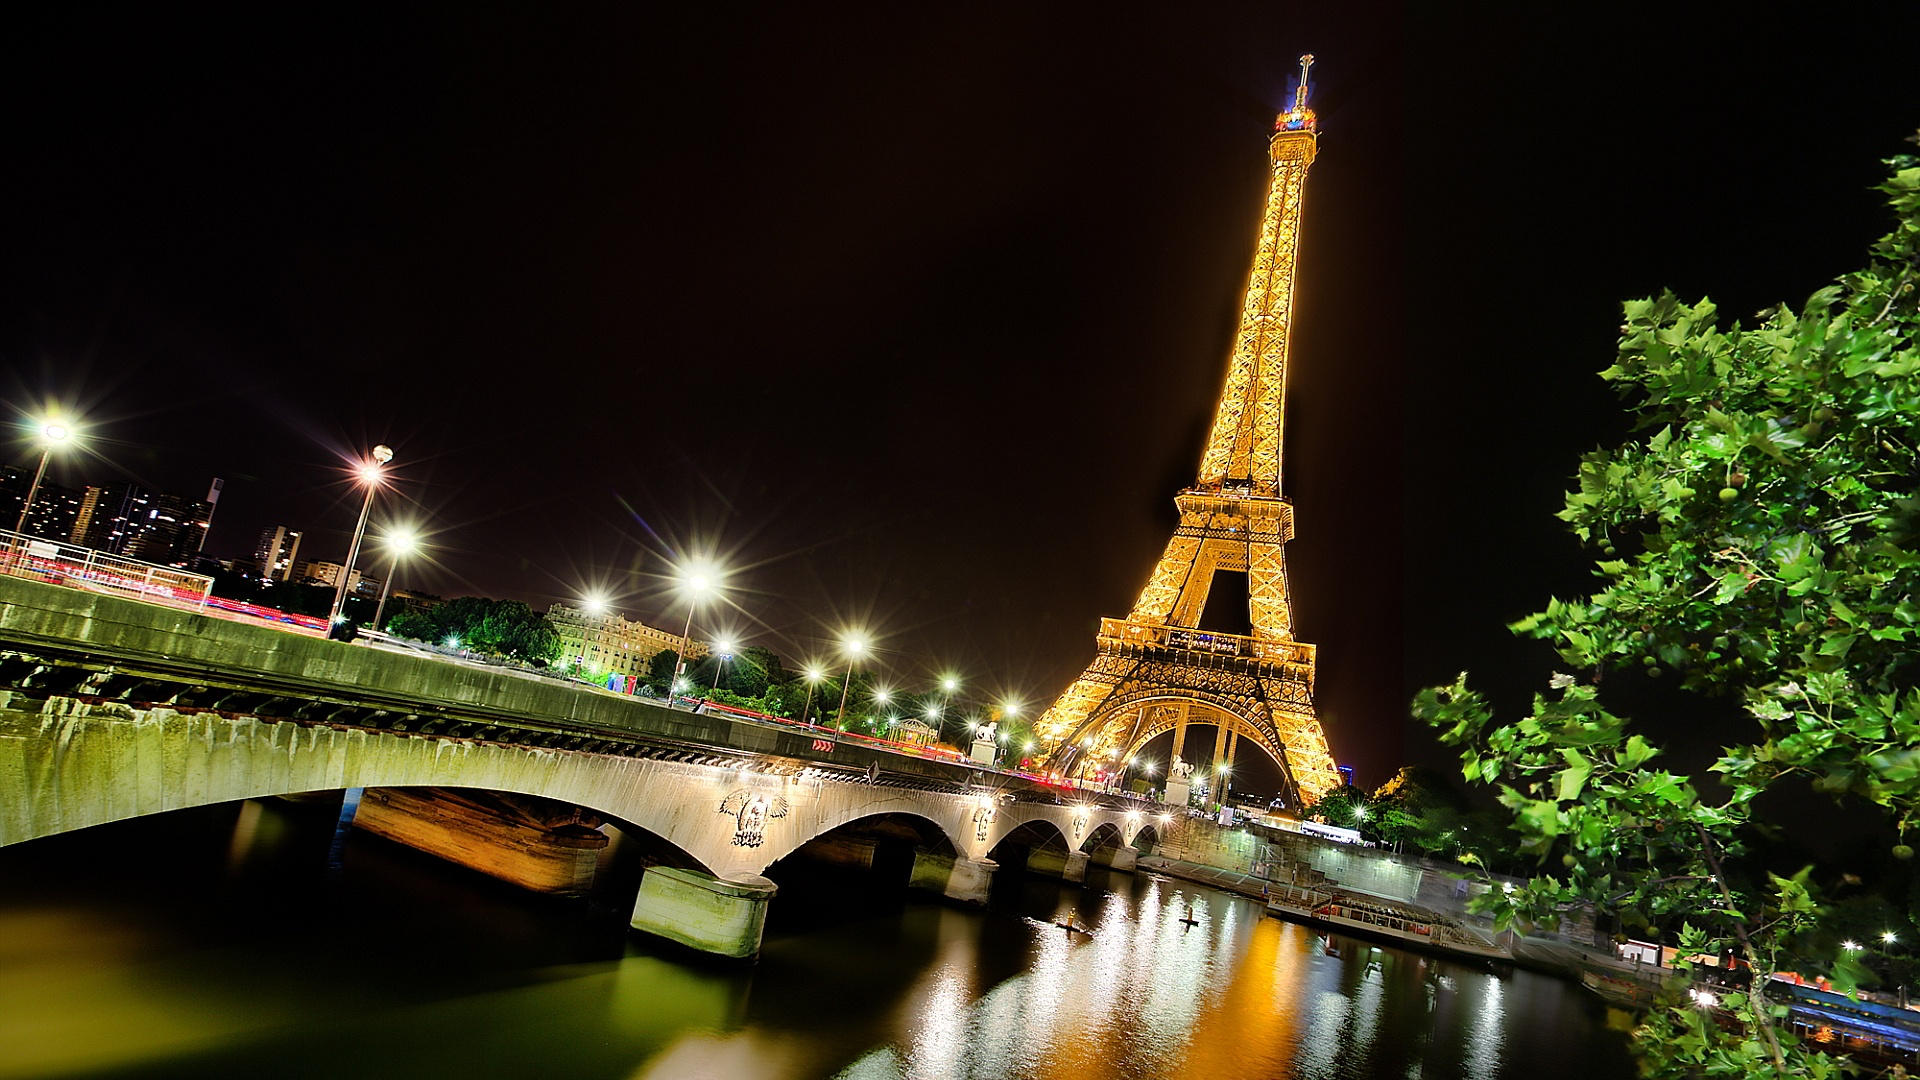 hd-wallpapers-eiffel-tower-paris-night-1920x1080 | wallpaper.wiki